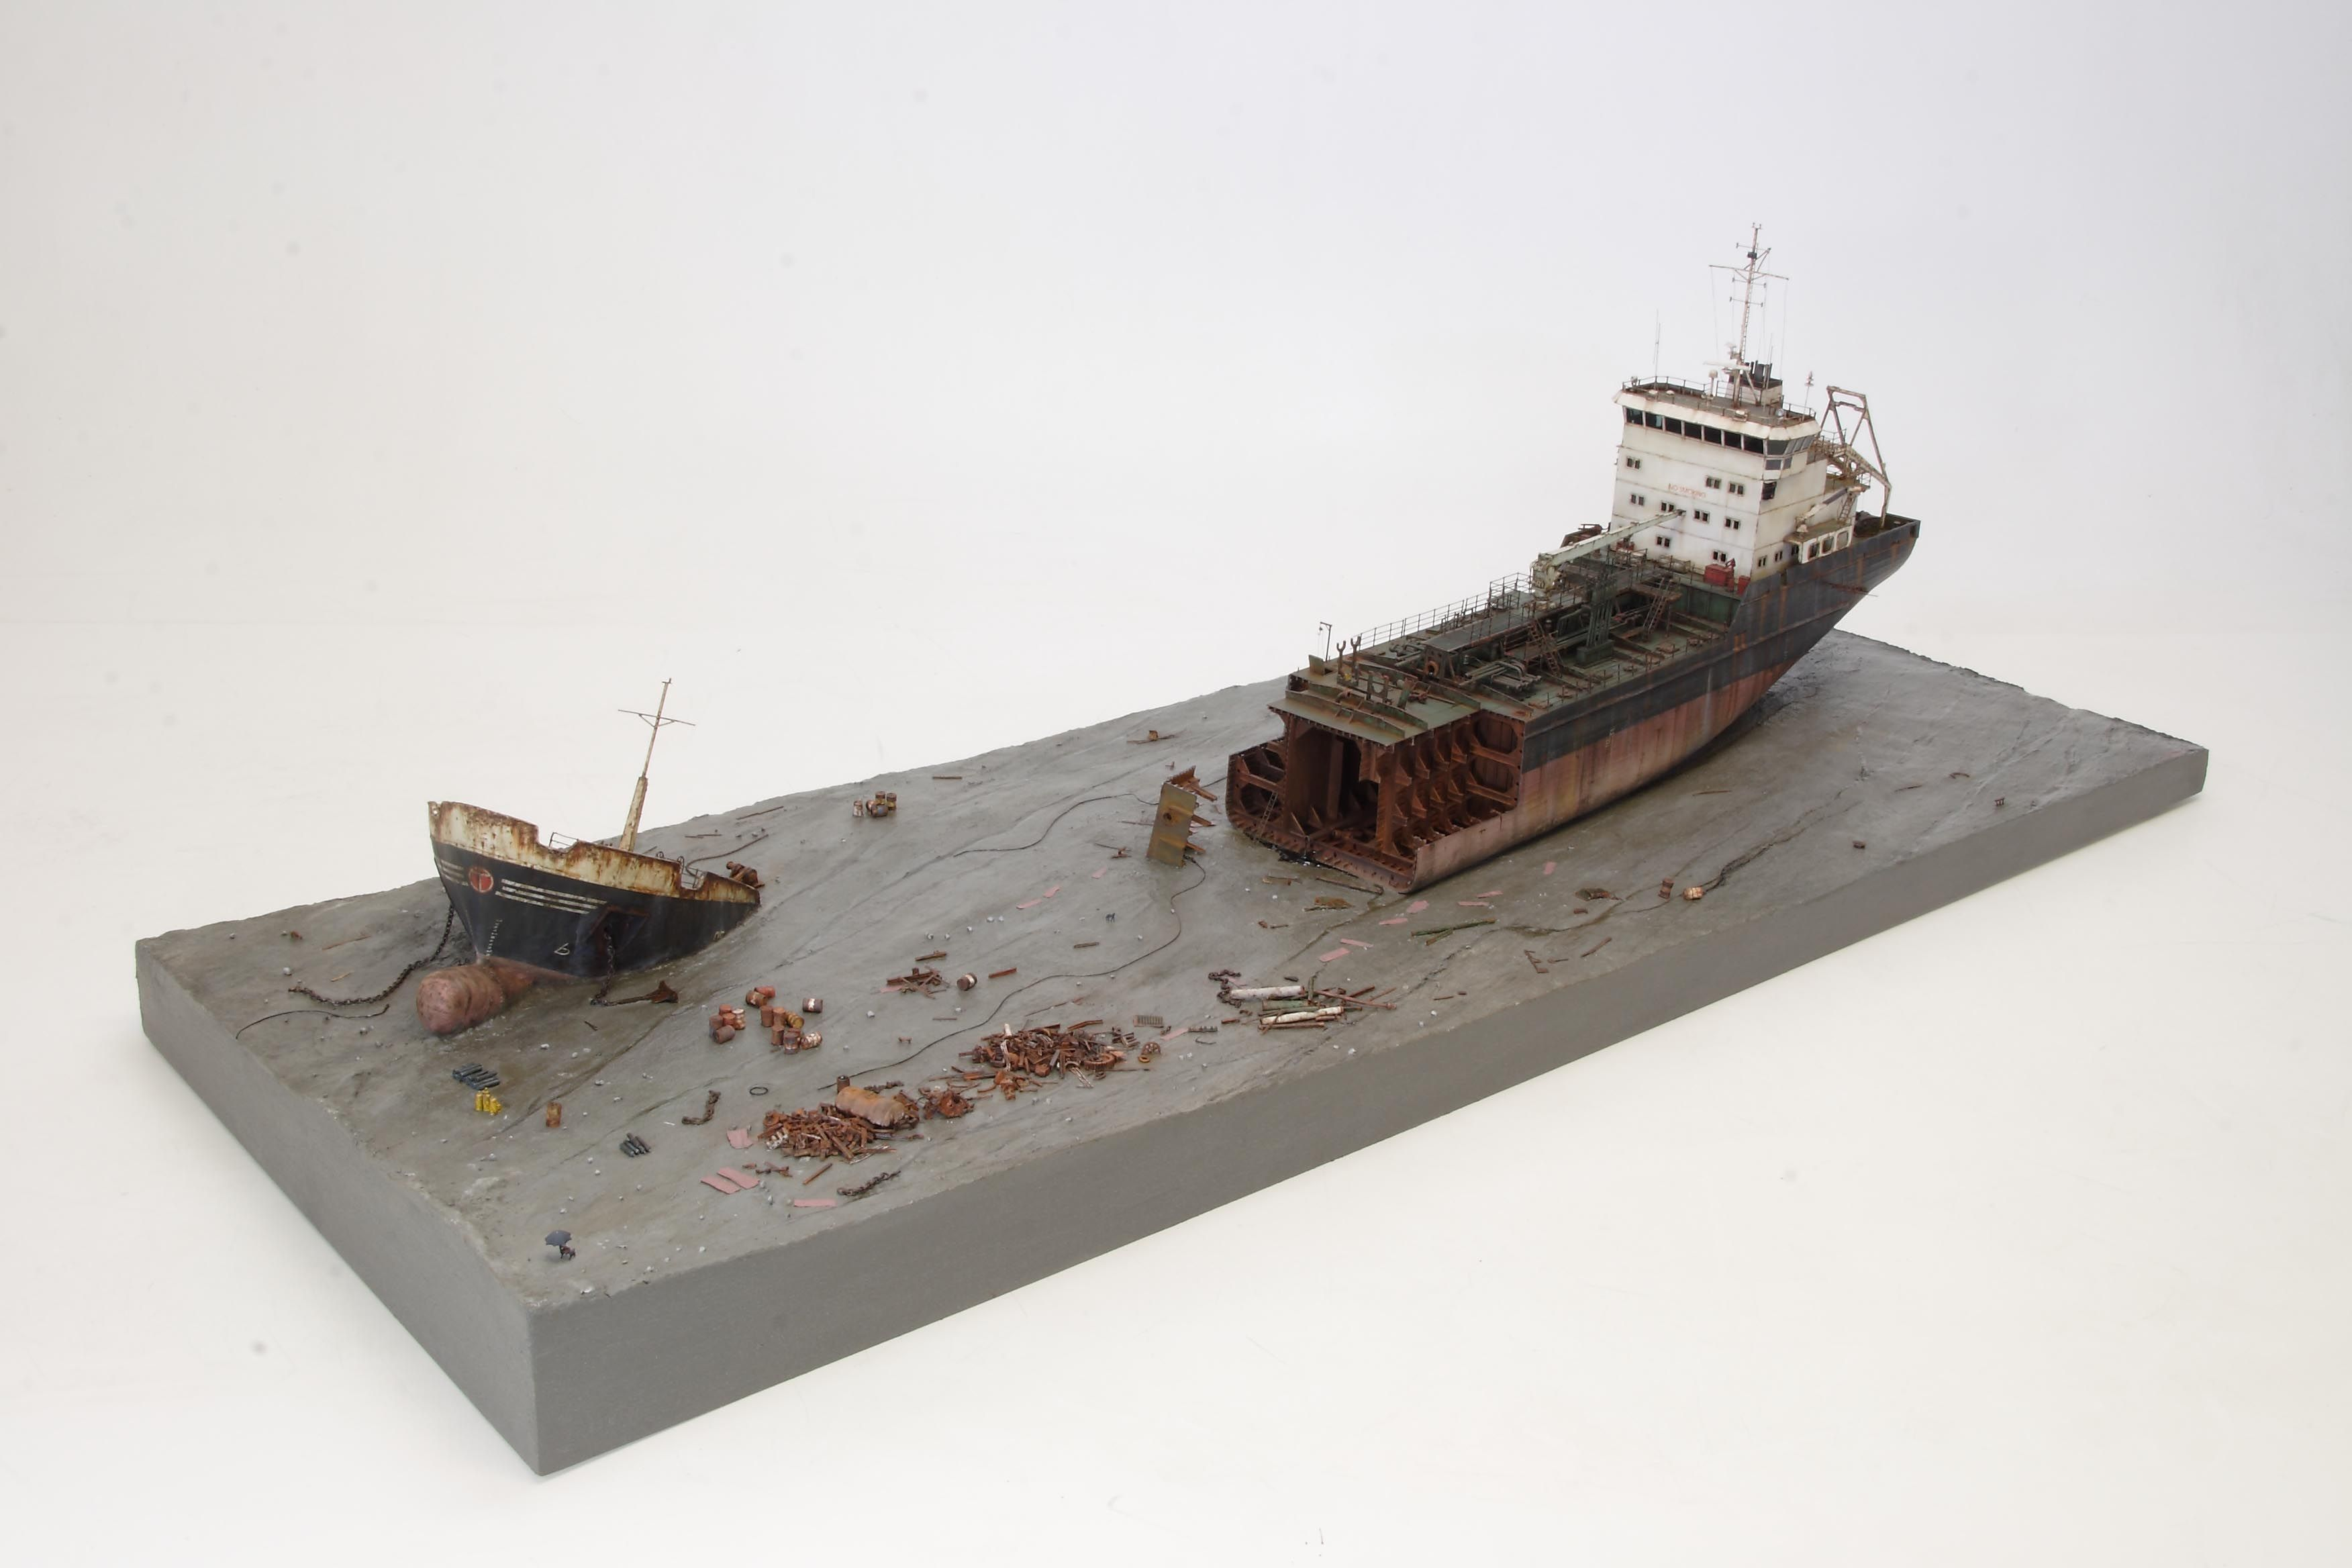 Beach in Chittagong wreckage of cargo ship 116 Scale